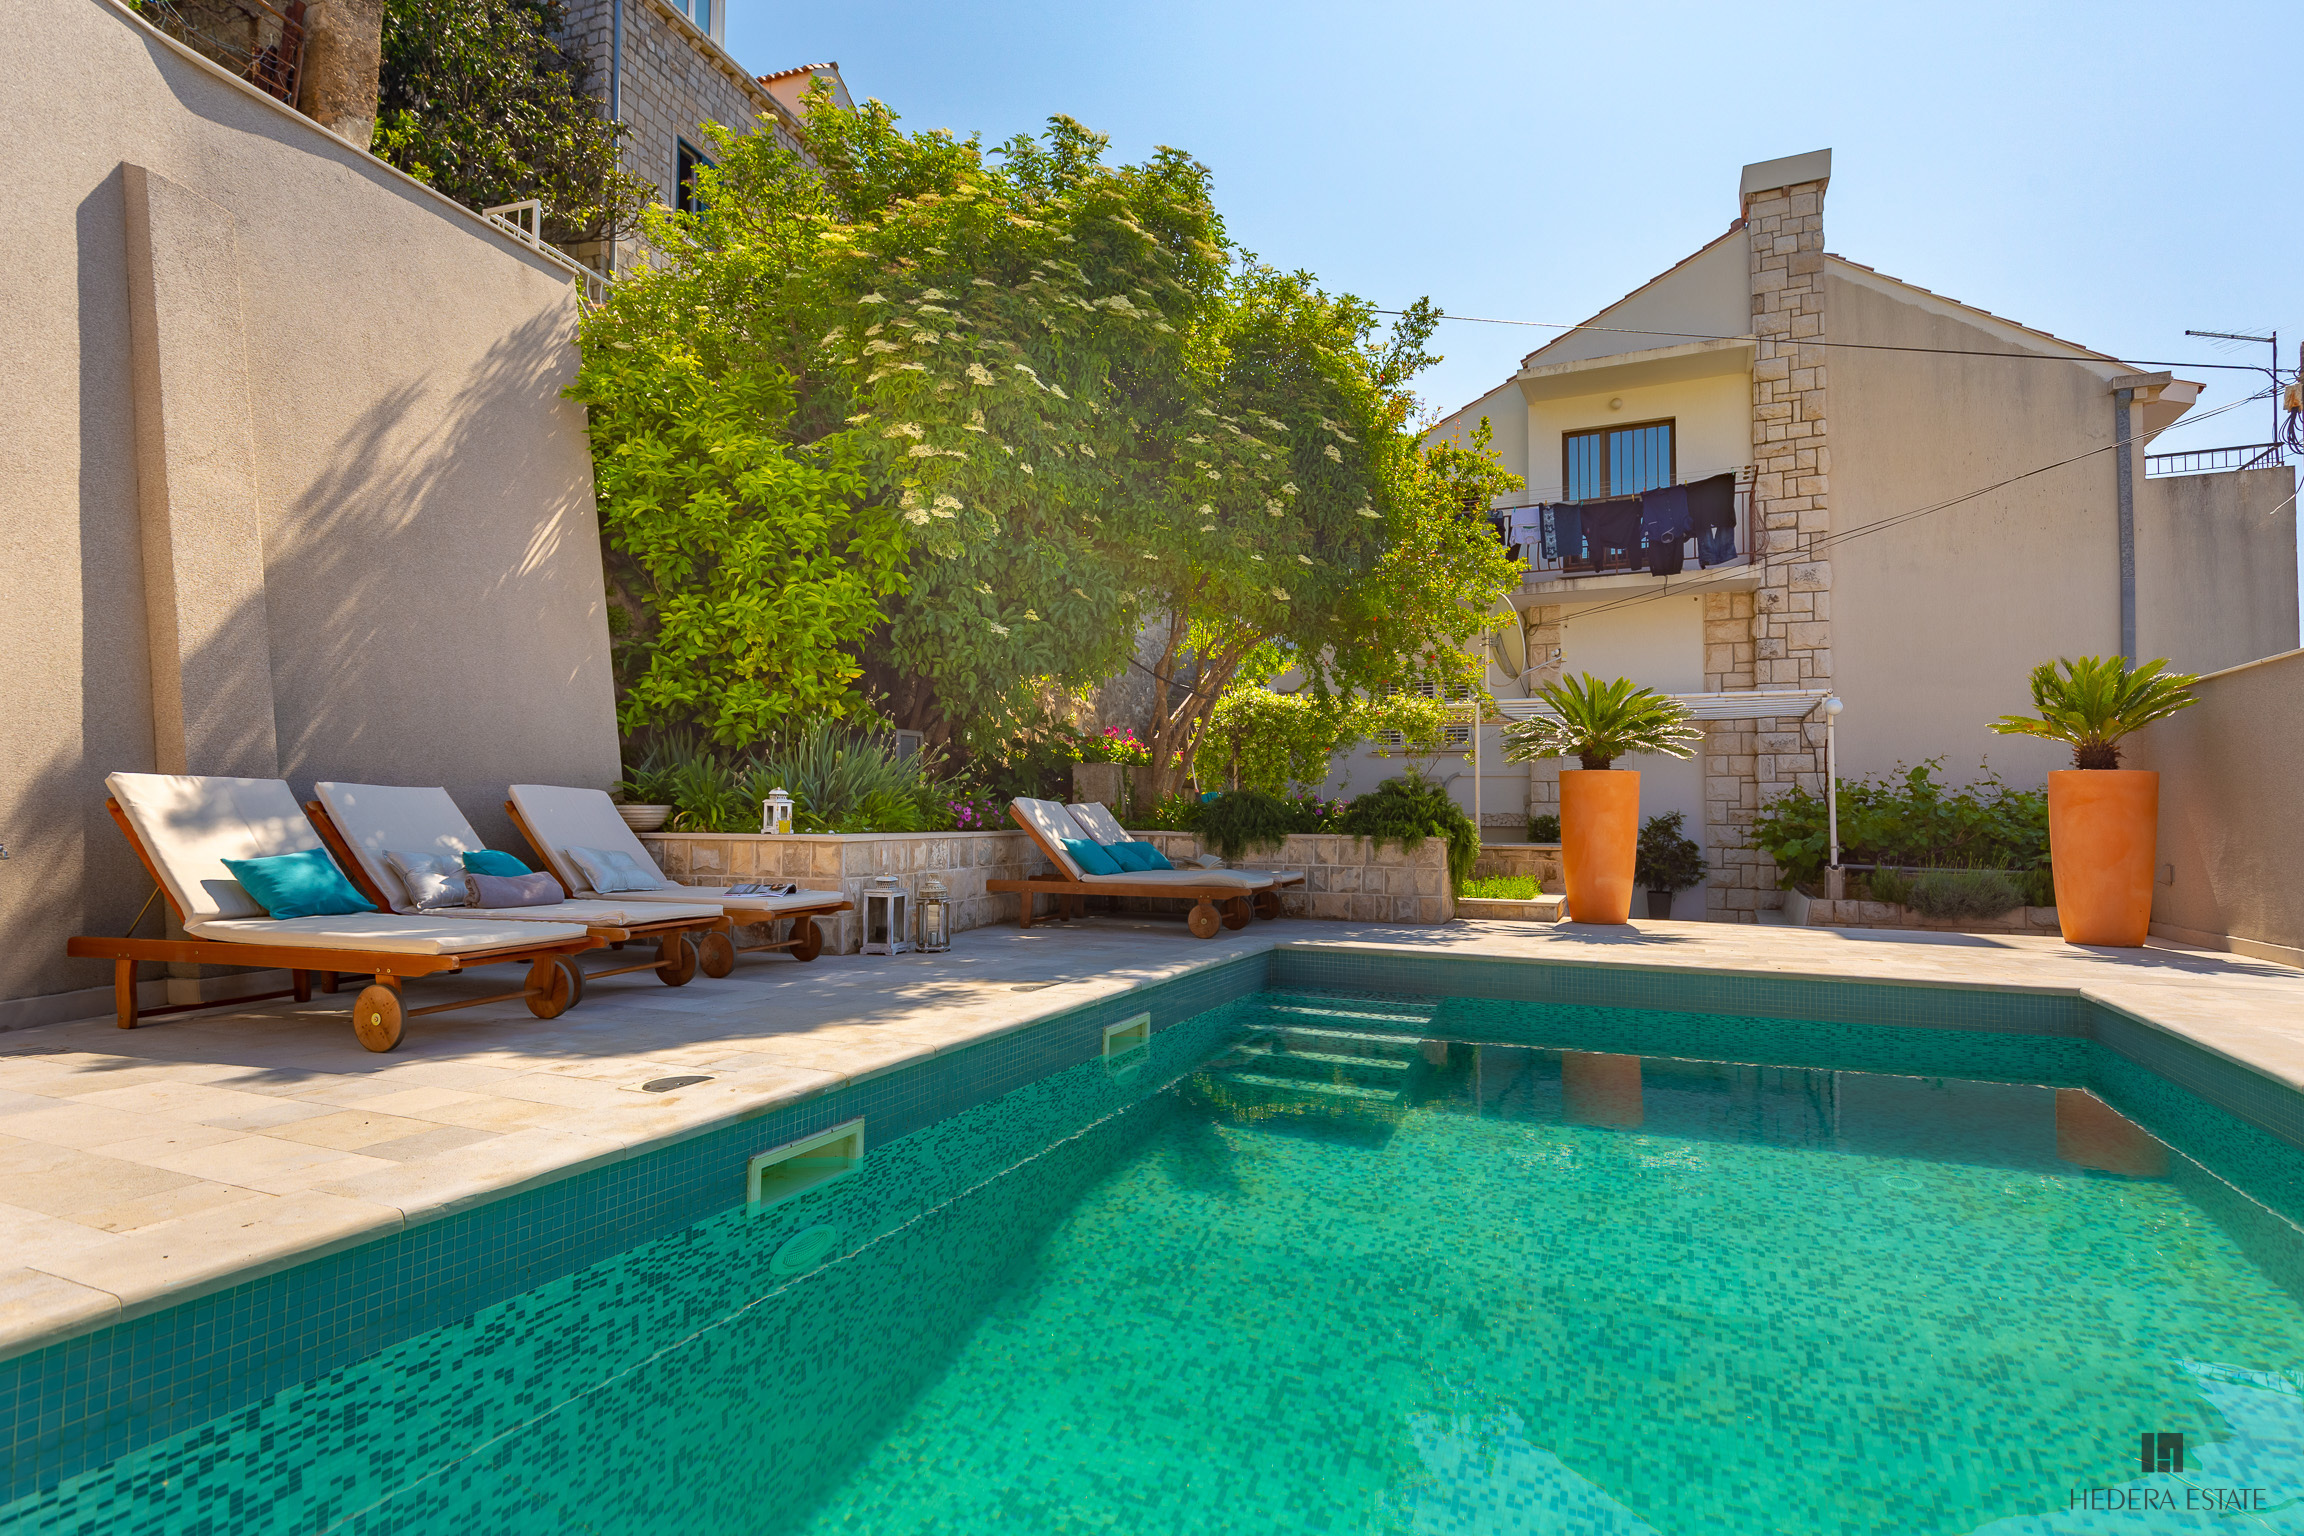 <p>Sleeps 4 (+1)<br />2 bedrooms<br />1 bathroom<br />Kitchen, dining area and living room<br />Swimming pool, 2 terraces, lounge, BBQ<br />Balcony with a sea view<br />Distance to Old Town: 3-4 minutewalk</p>